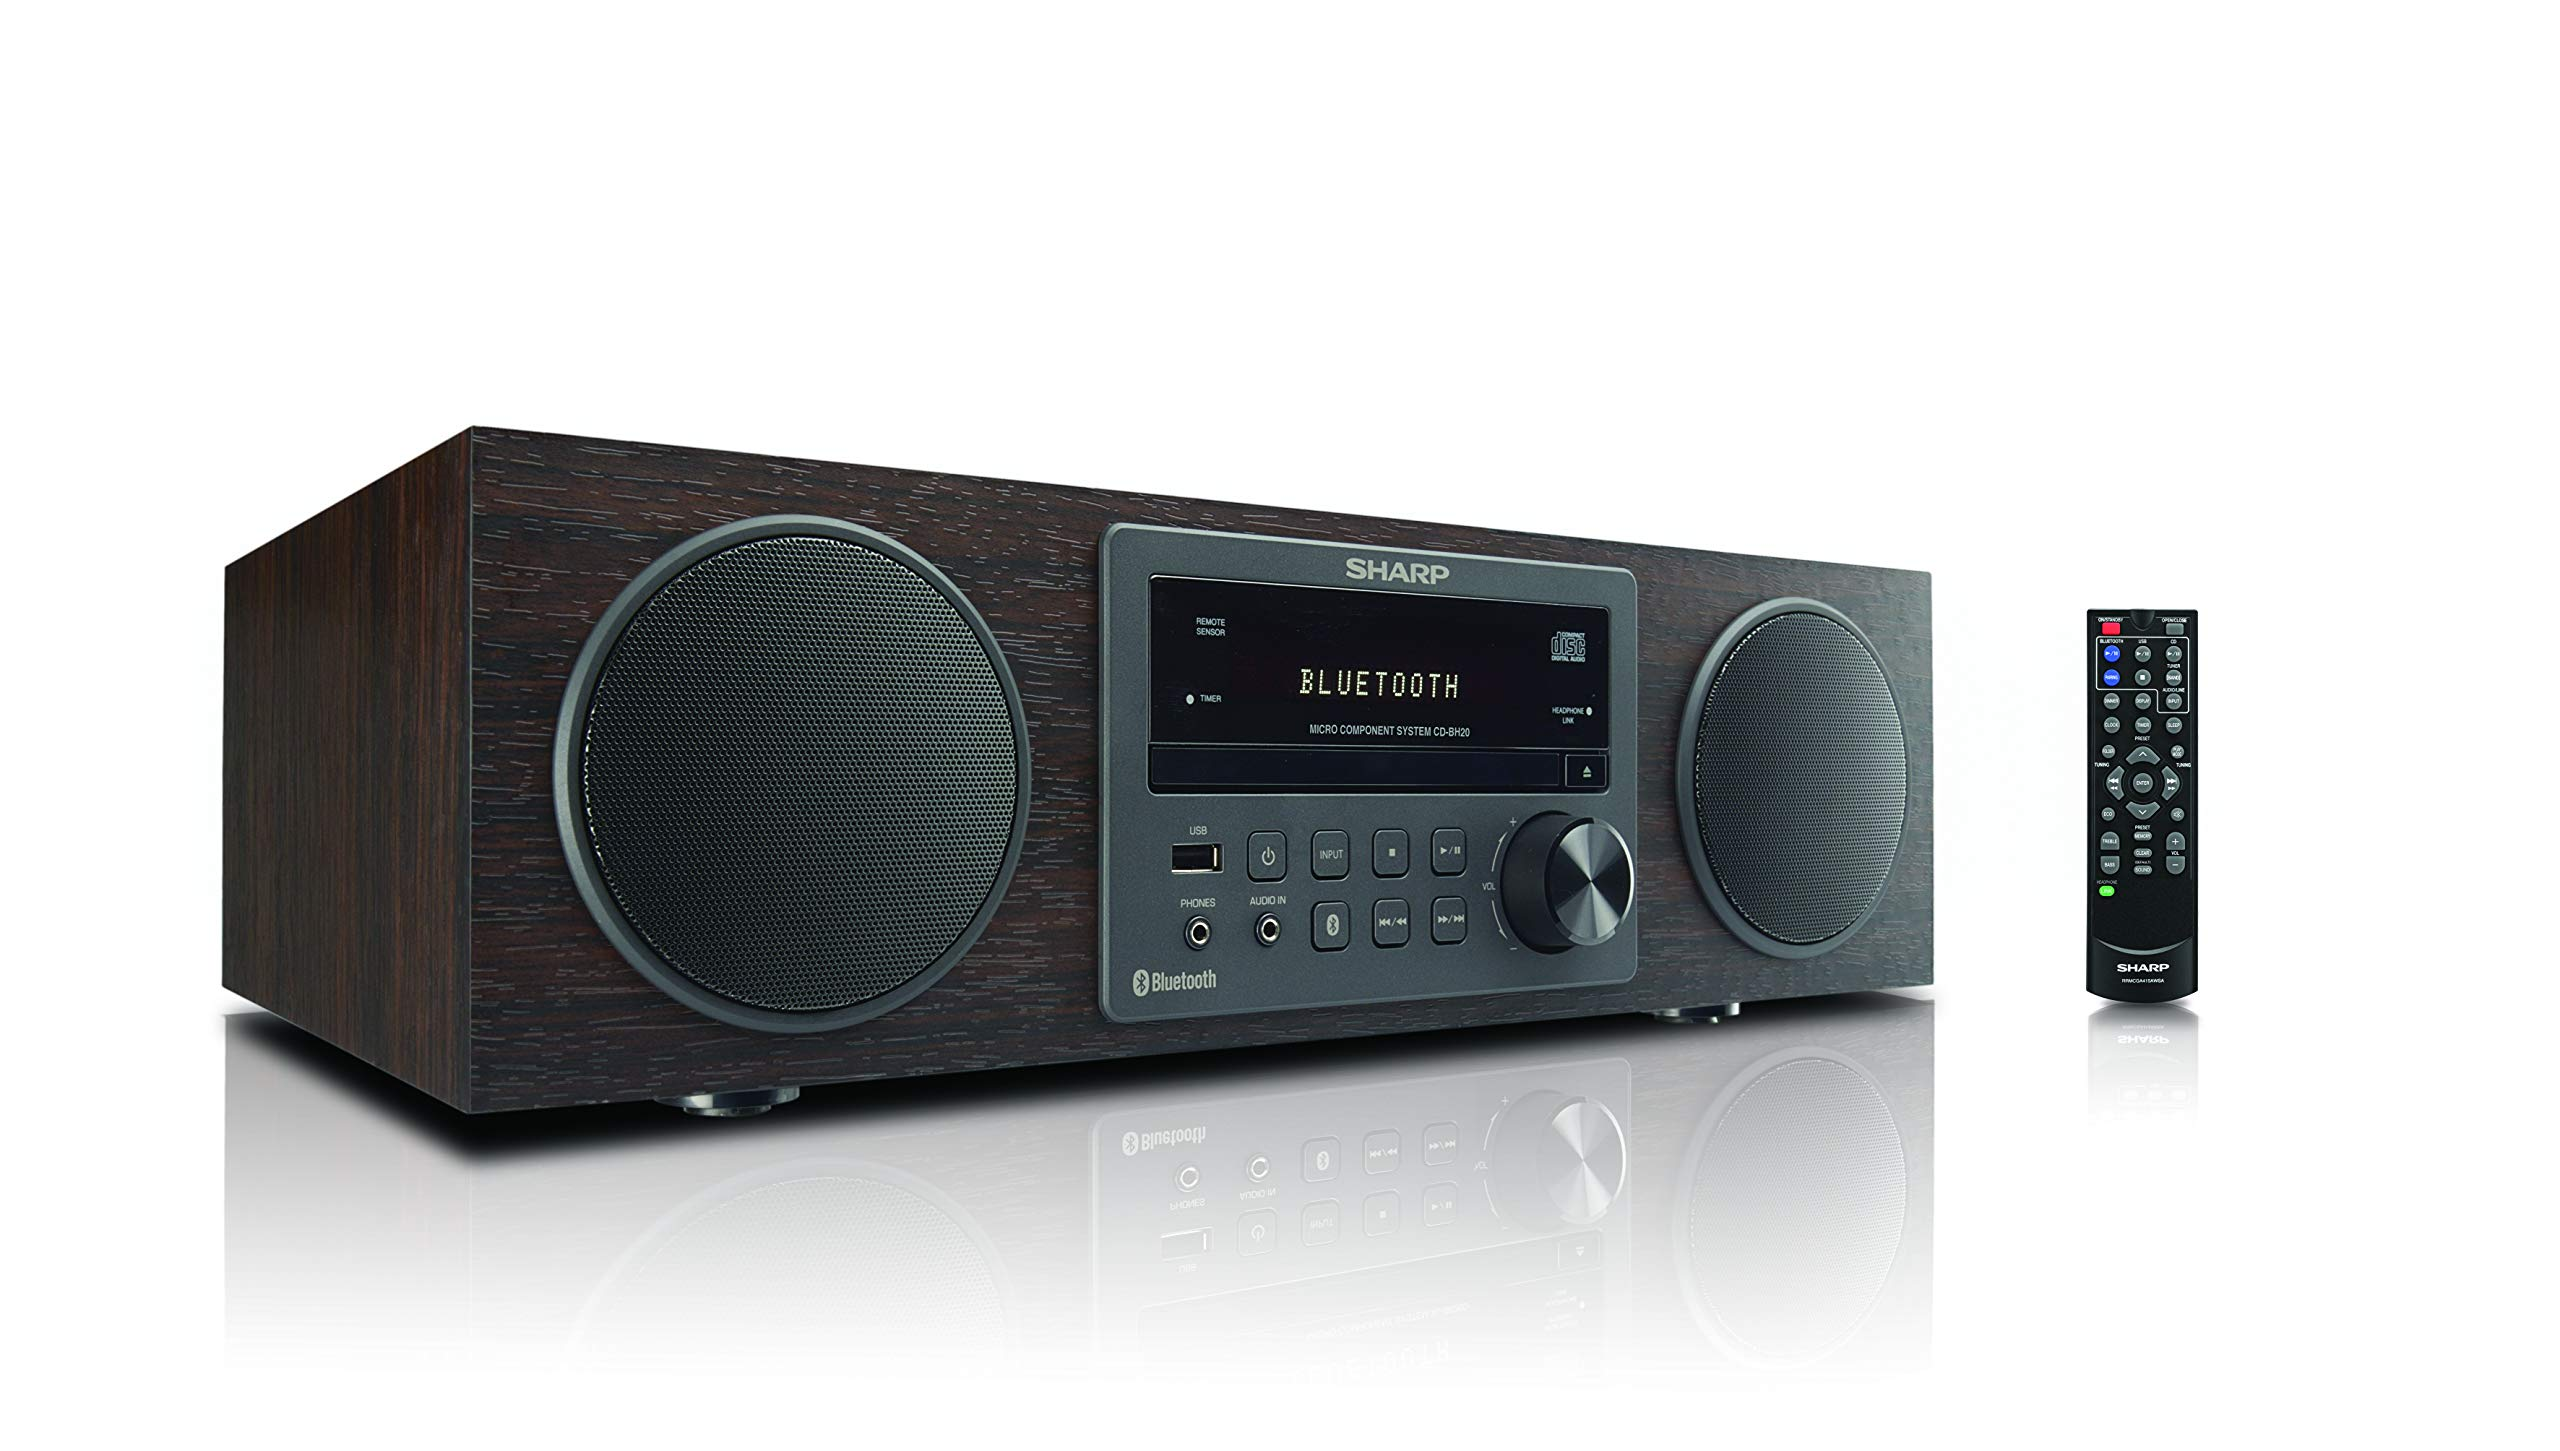 Sharp Vintage Style Modern Retro Look Micro Component Wireless Bluetooth Audio Streaming & Cd Player Wood Speaker System + Remote, USB Port for MP3 Playback, Am/FM Stereo Digital Tuner, Aux, Brown Oak by Sharp